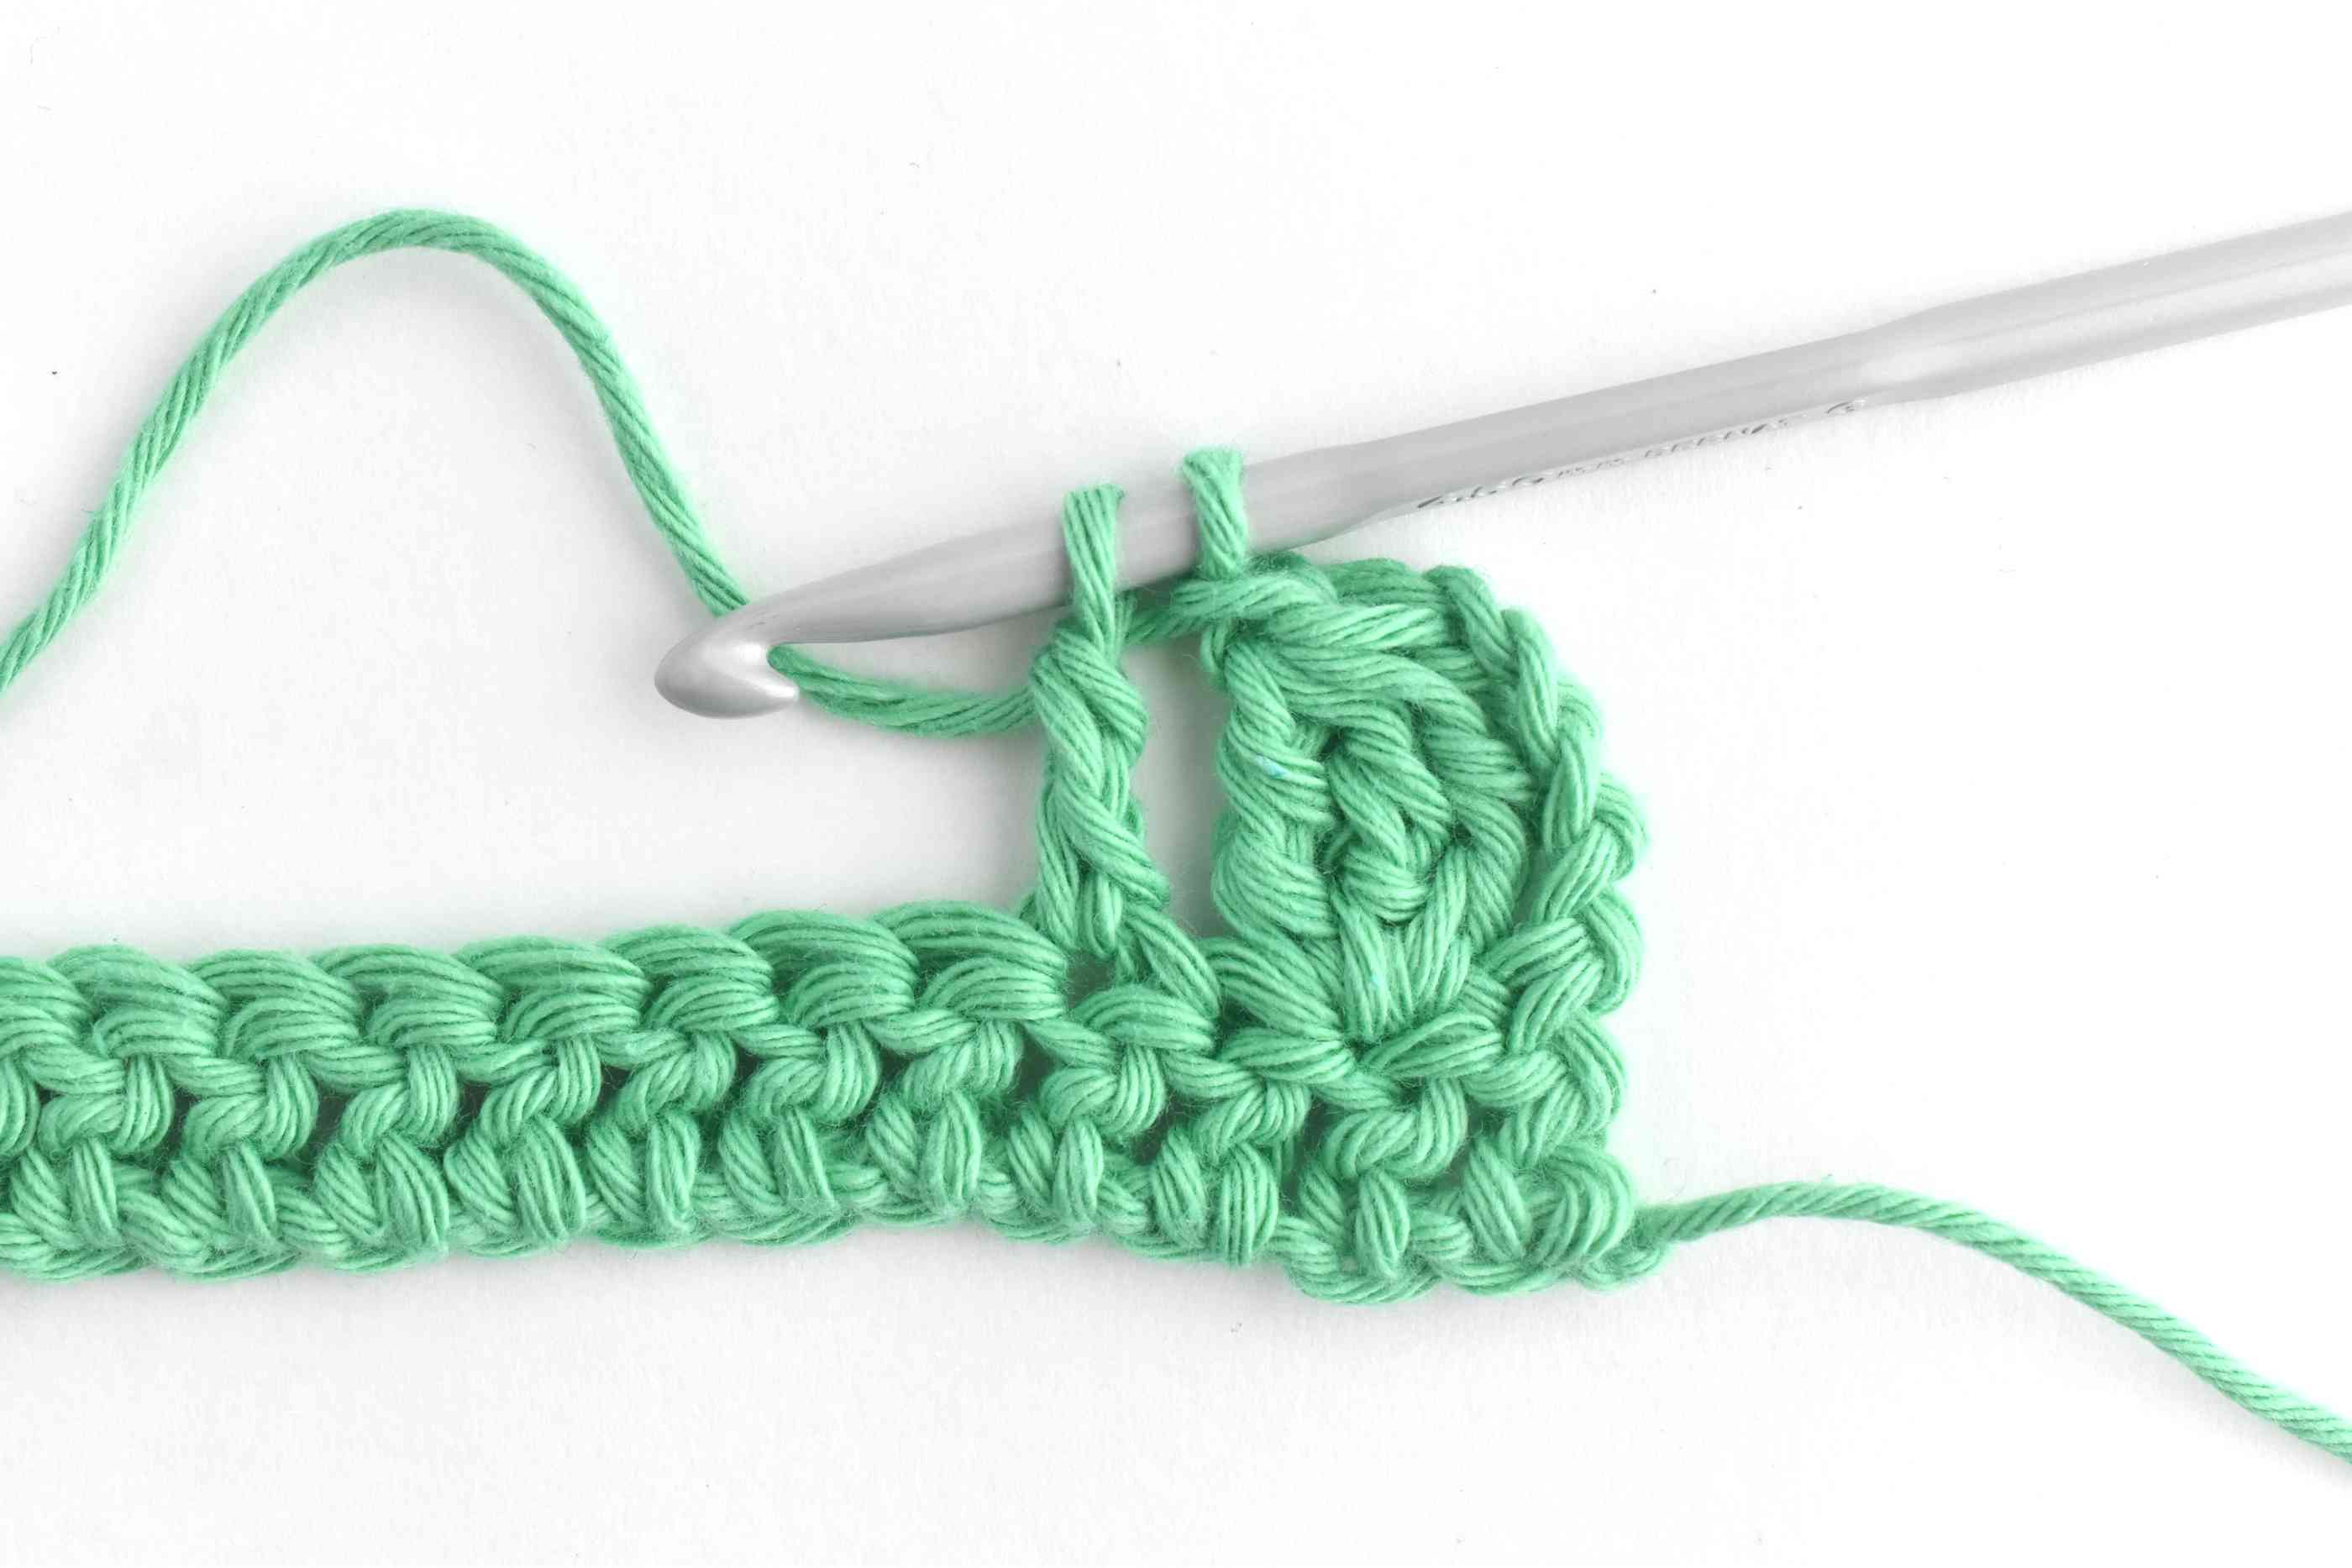 Chain 1 and Skip a Stitch and Start the Next Cluster